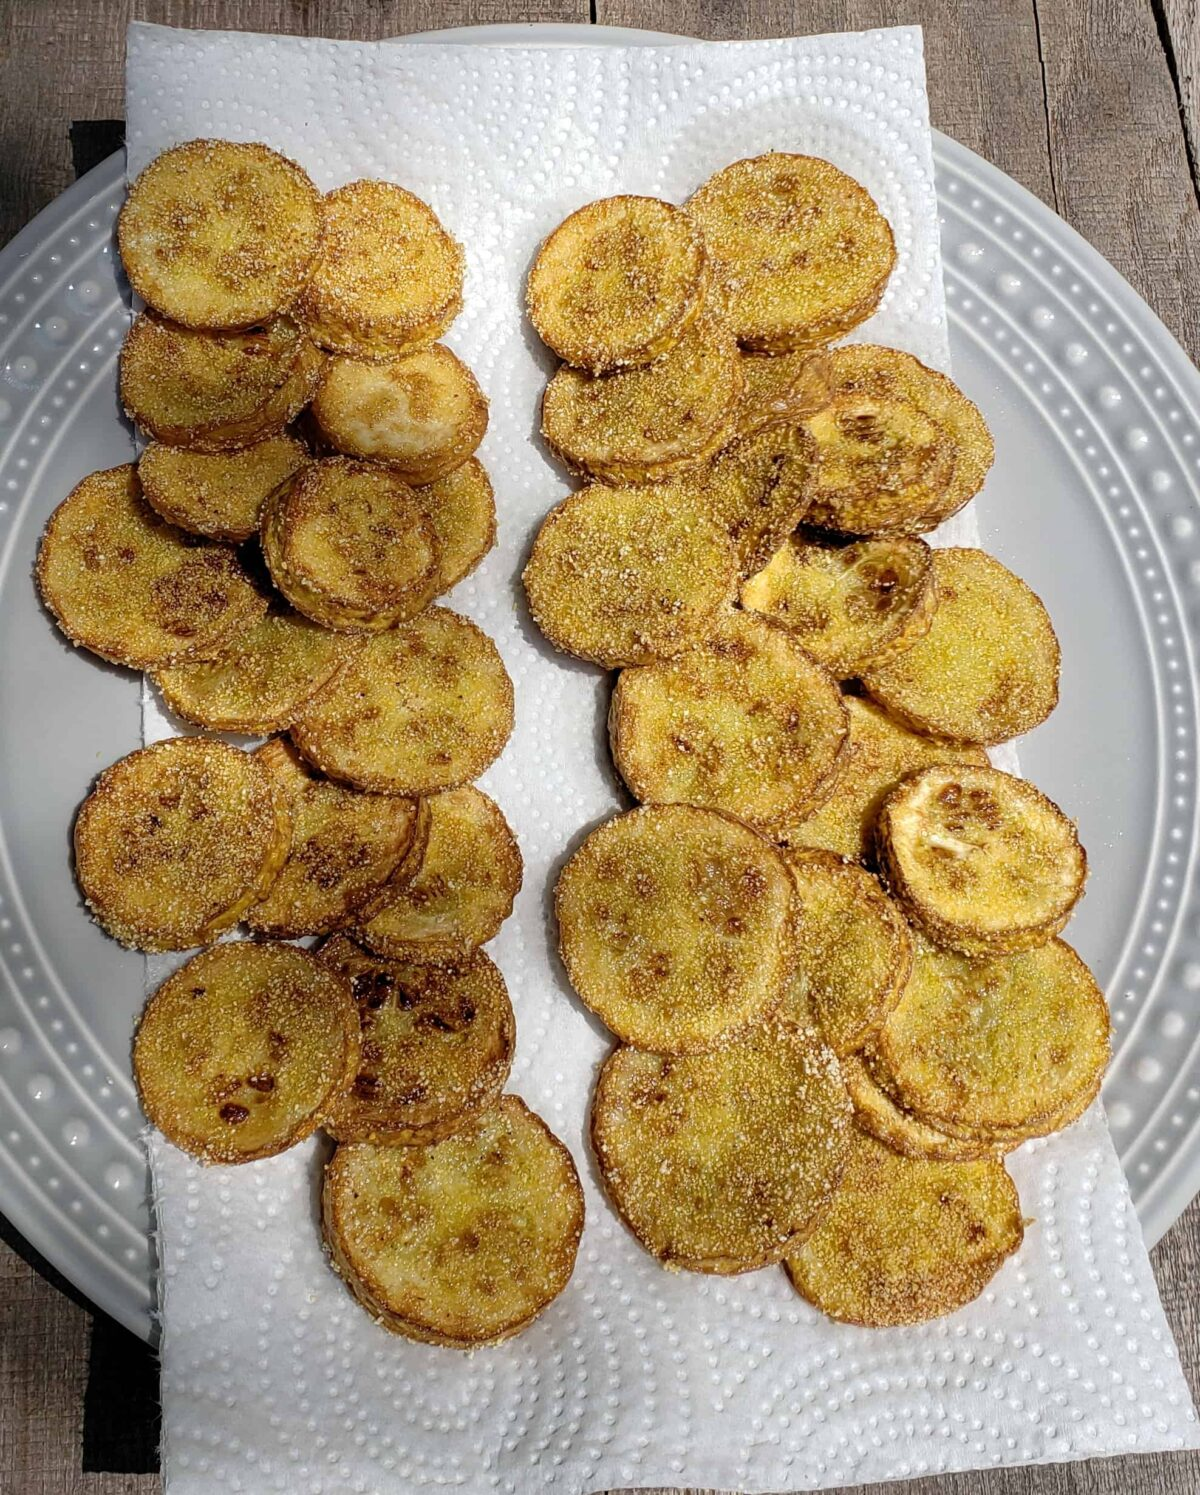 Fried yellow squash comparing coating cornmeal and cornmeal/flour side by side